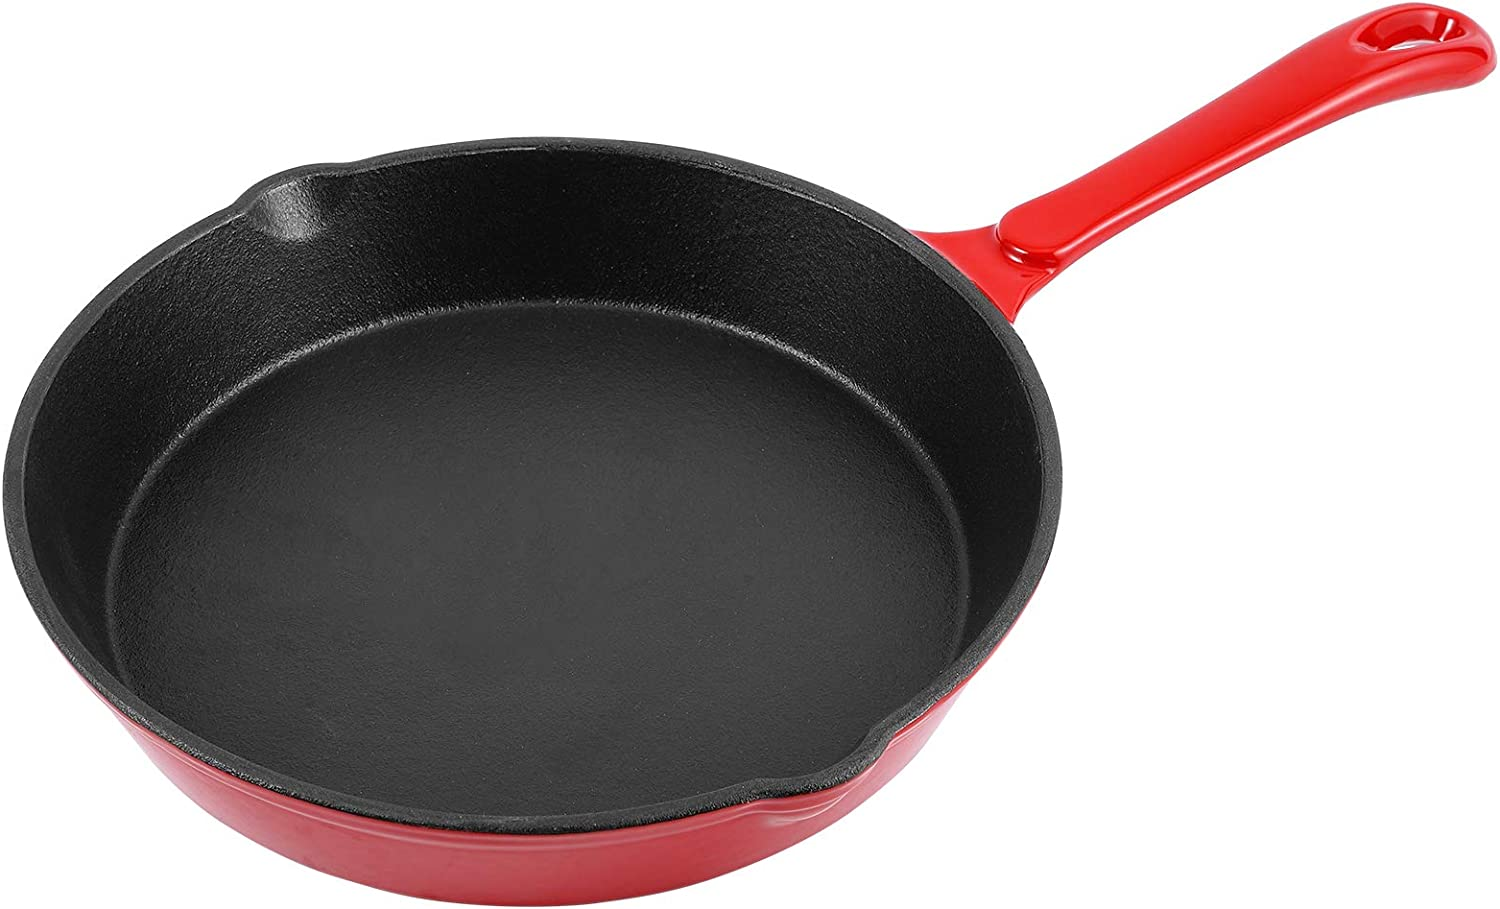 Enameled Cast Iron Skillet Chef's Classic 10 Inch Round Fry Pan for Kitchen, Camping Indoor and Outdoor Cooking, Frying, Searing and Baking (Cherry Red)